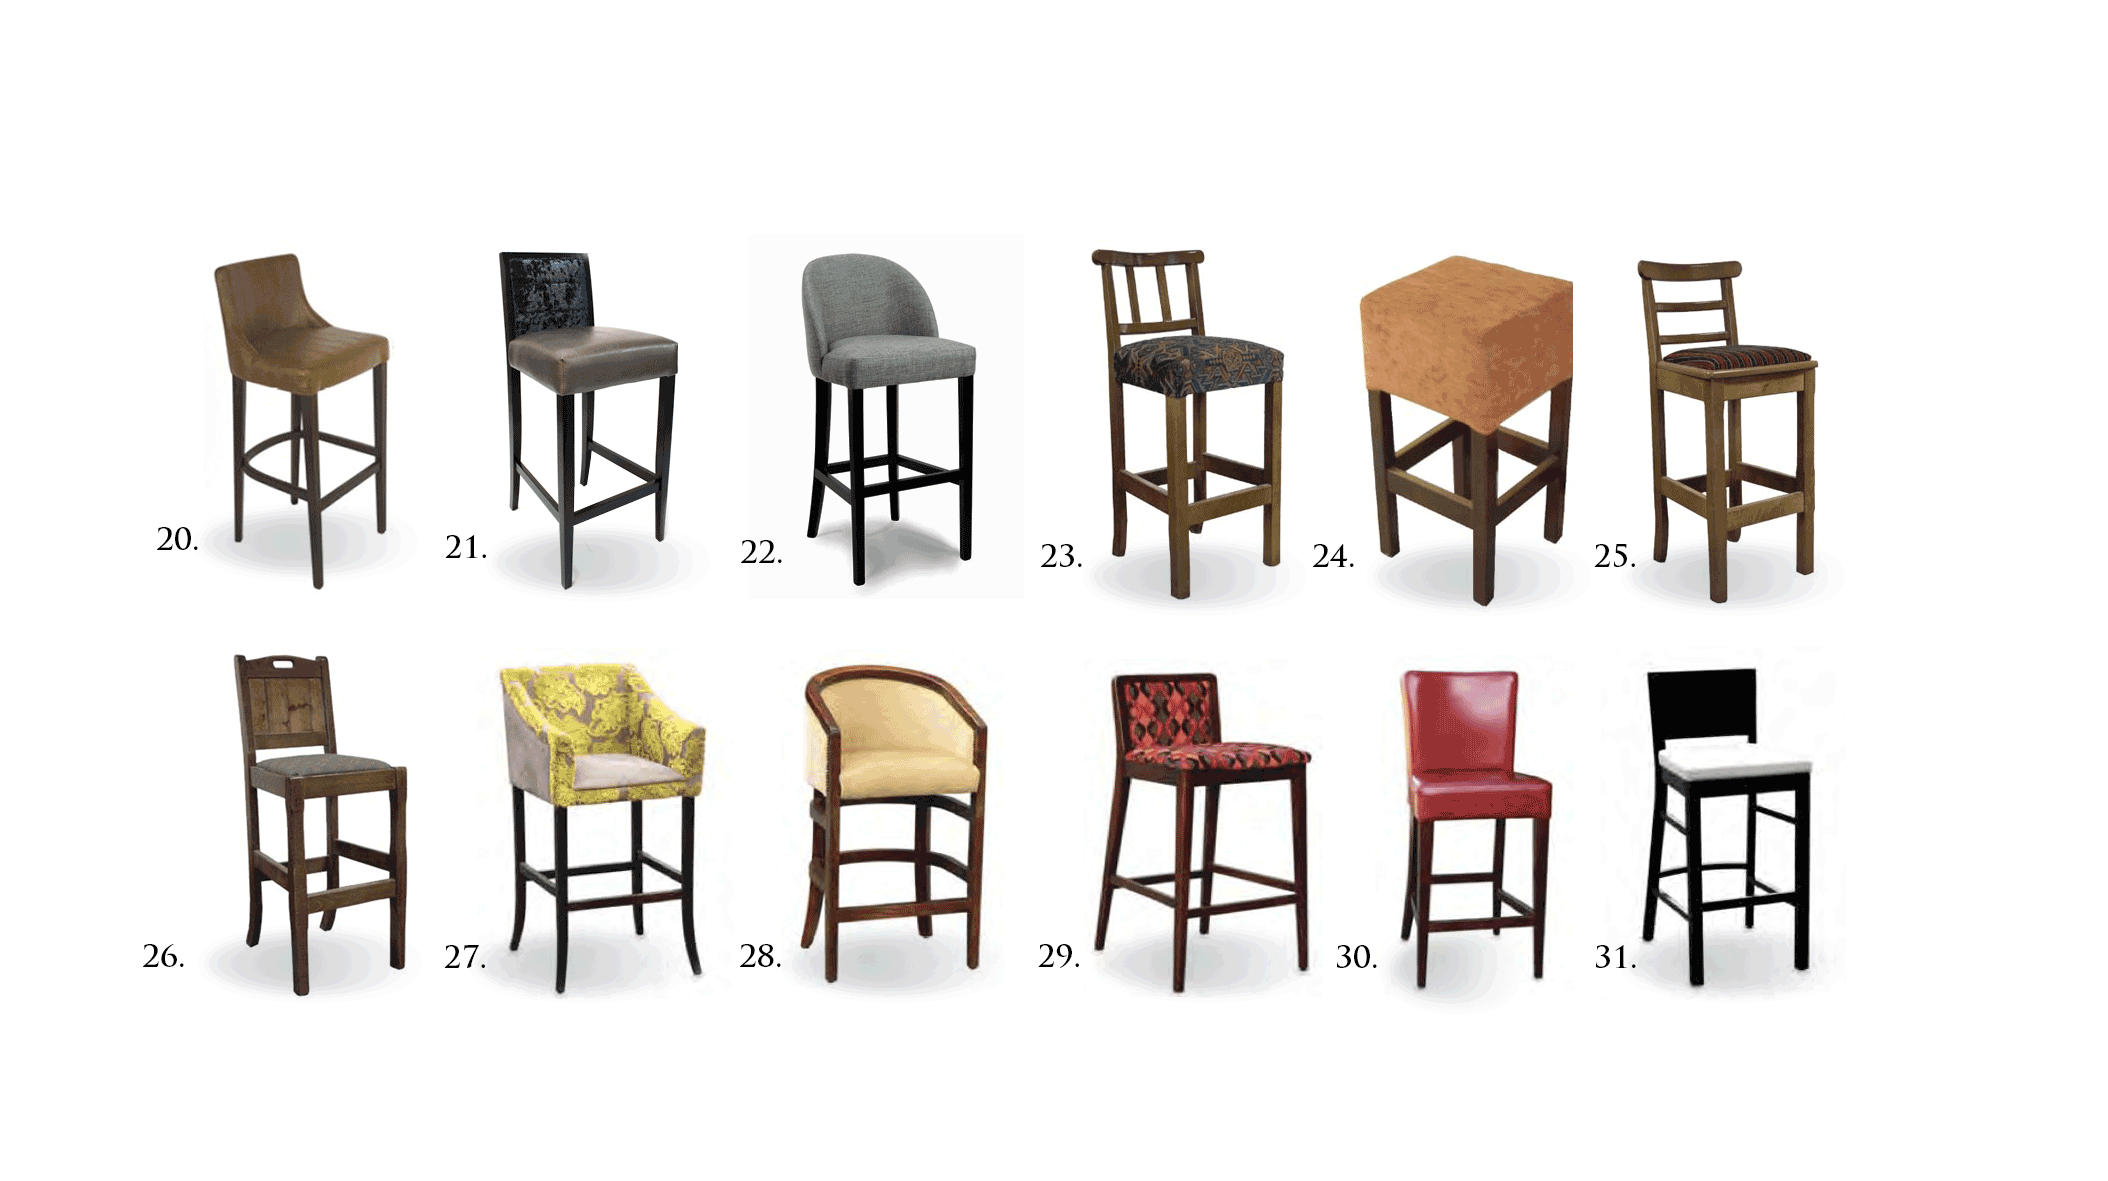 Delaneys-Outdoor-Furniture-High-Stool1-2108x1181.png